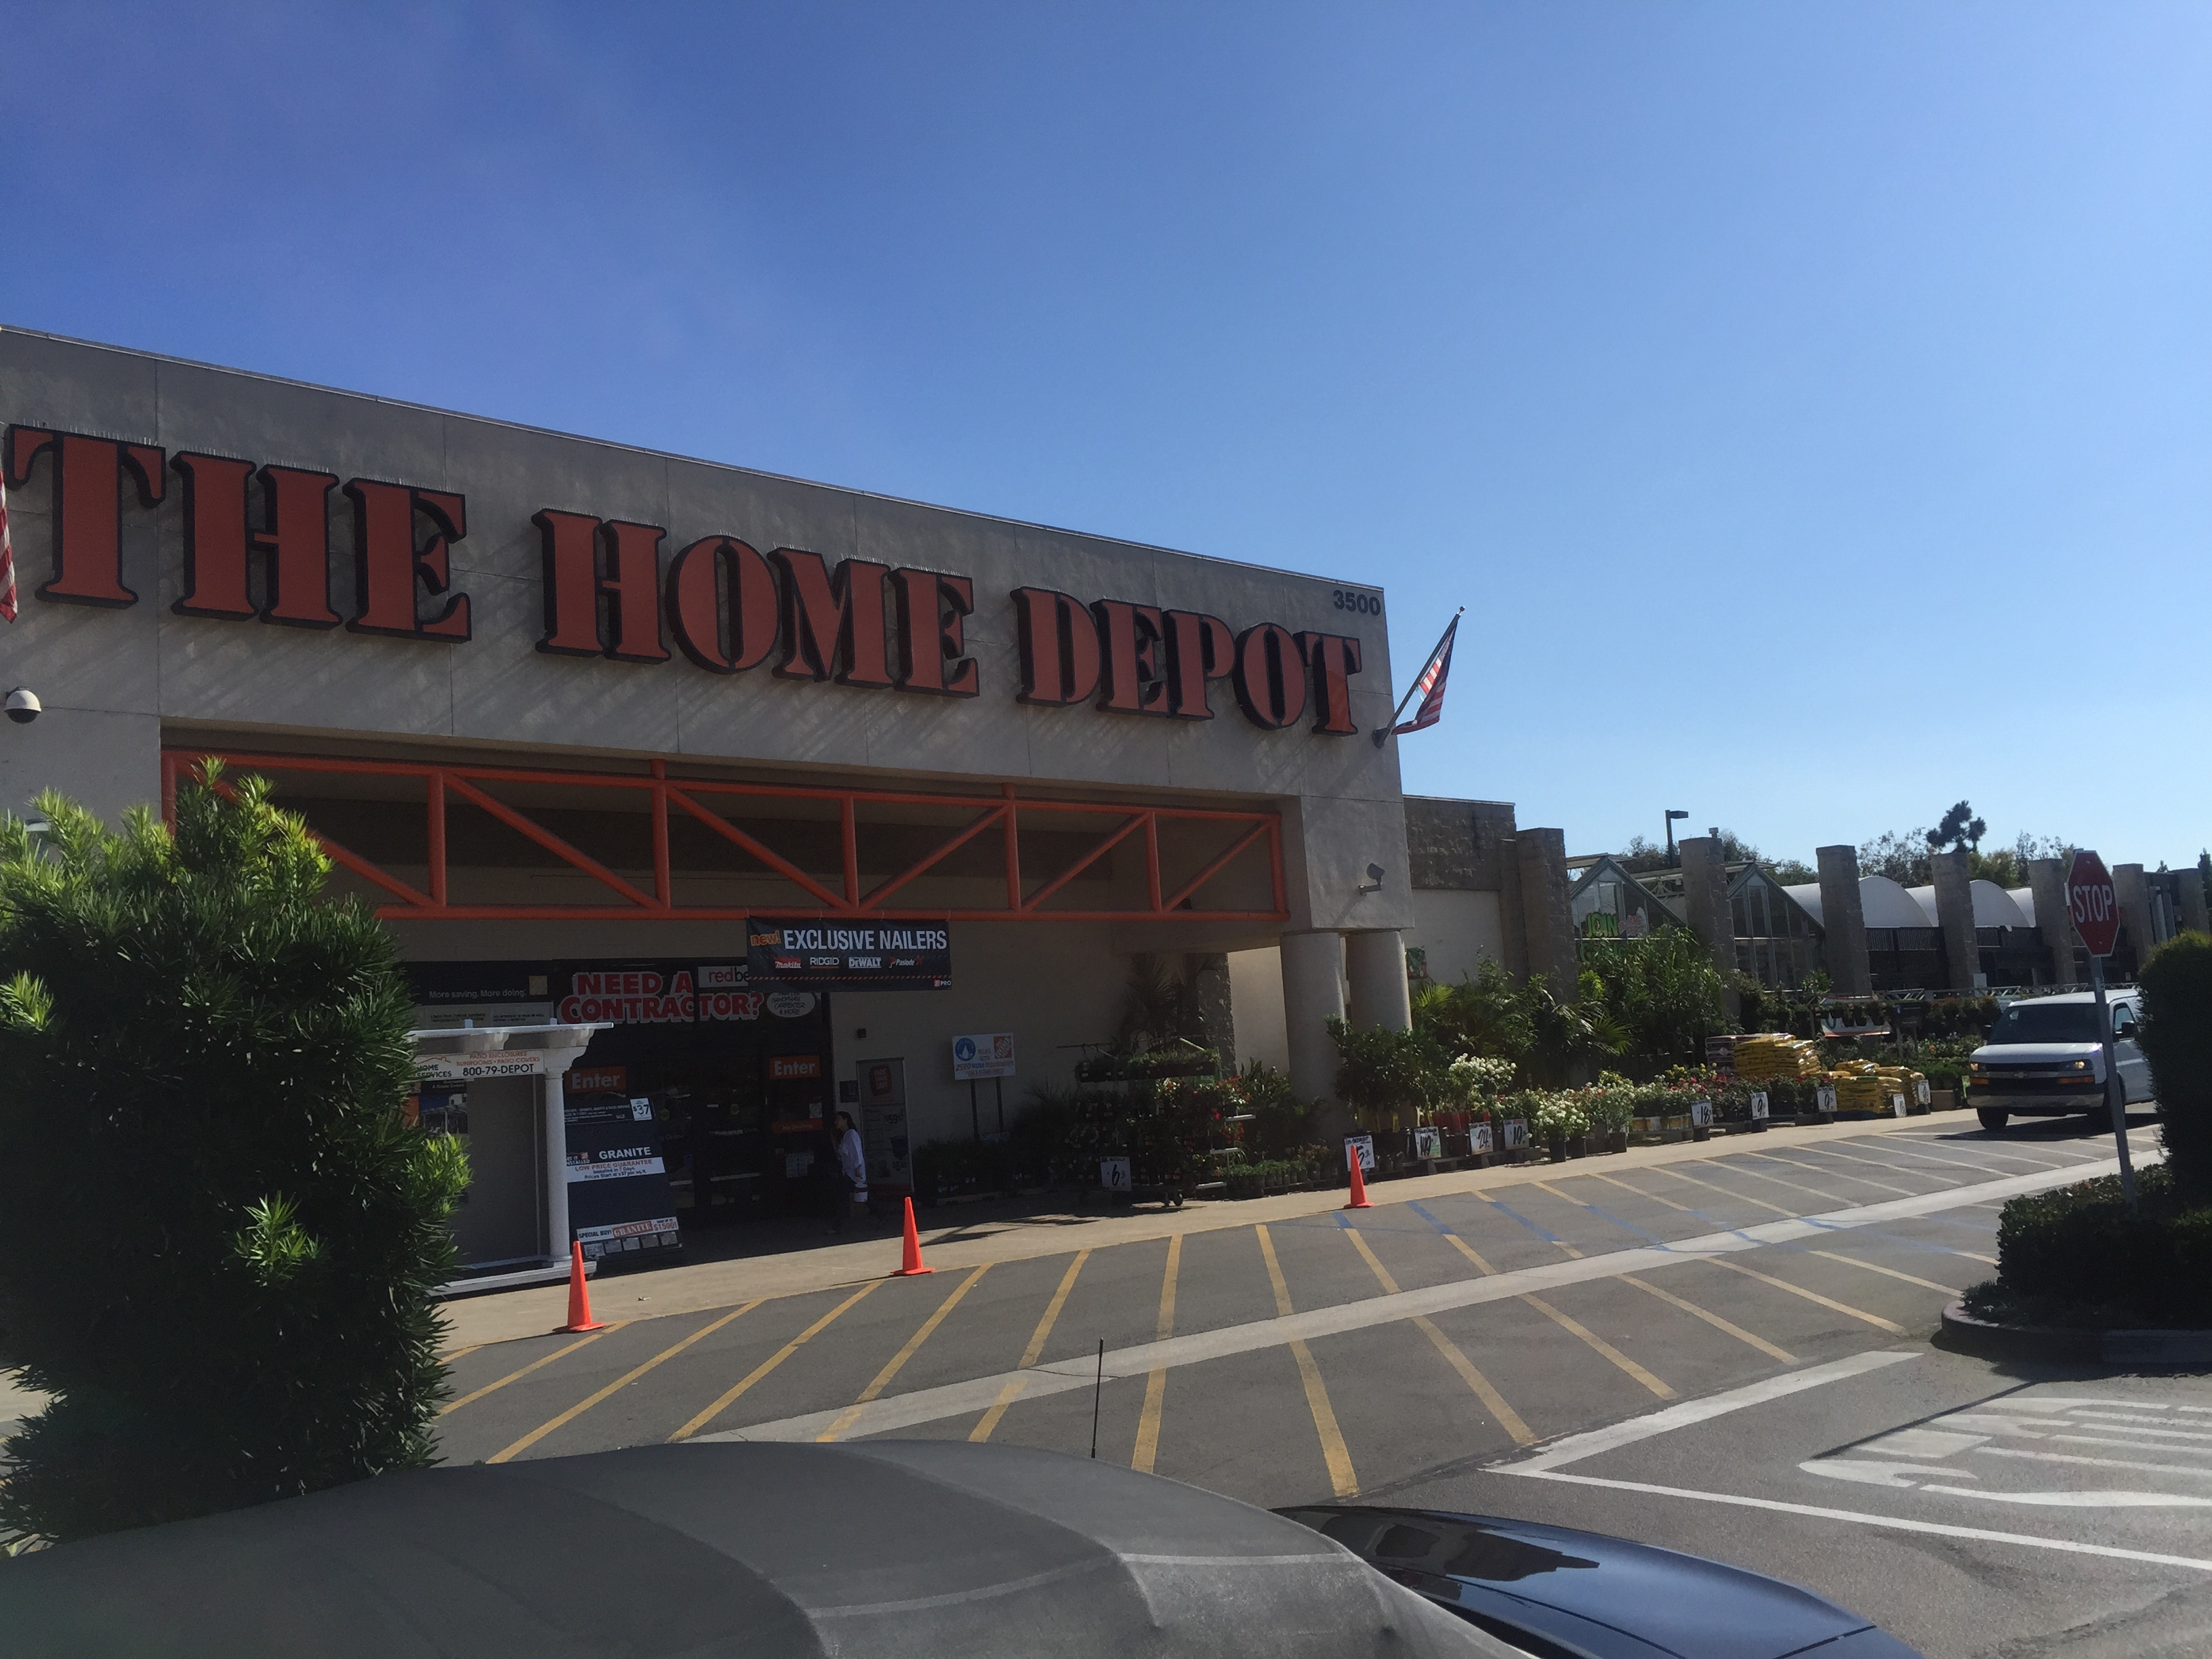 The home depot in santa ana ca whitepages for Z furniture outlet santa ana